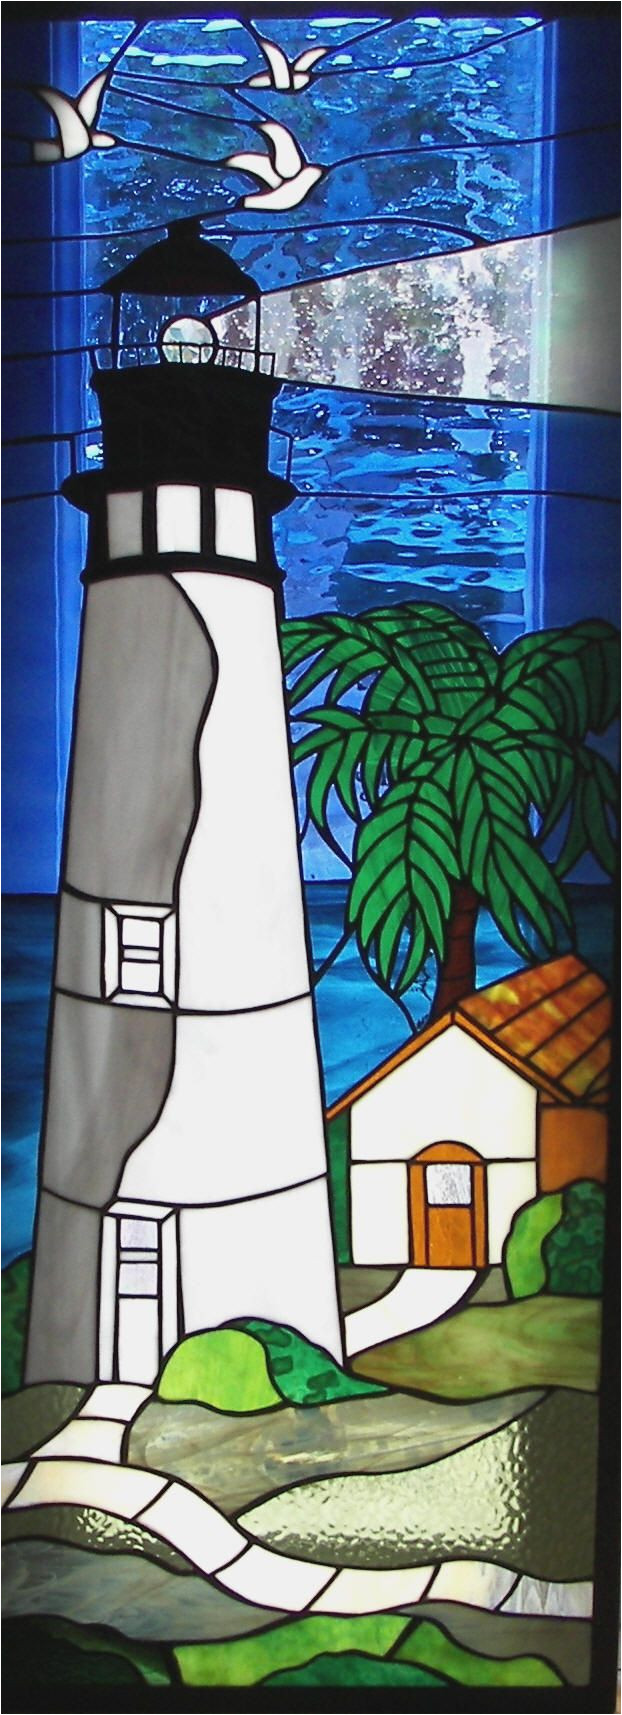 stained glass of a light house